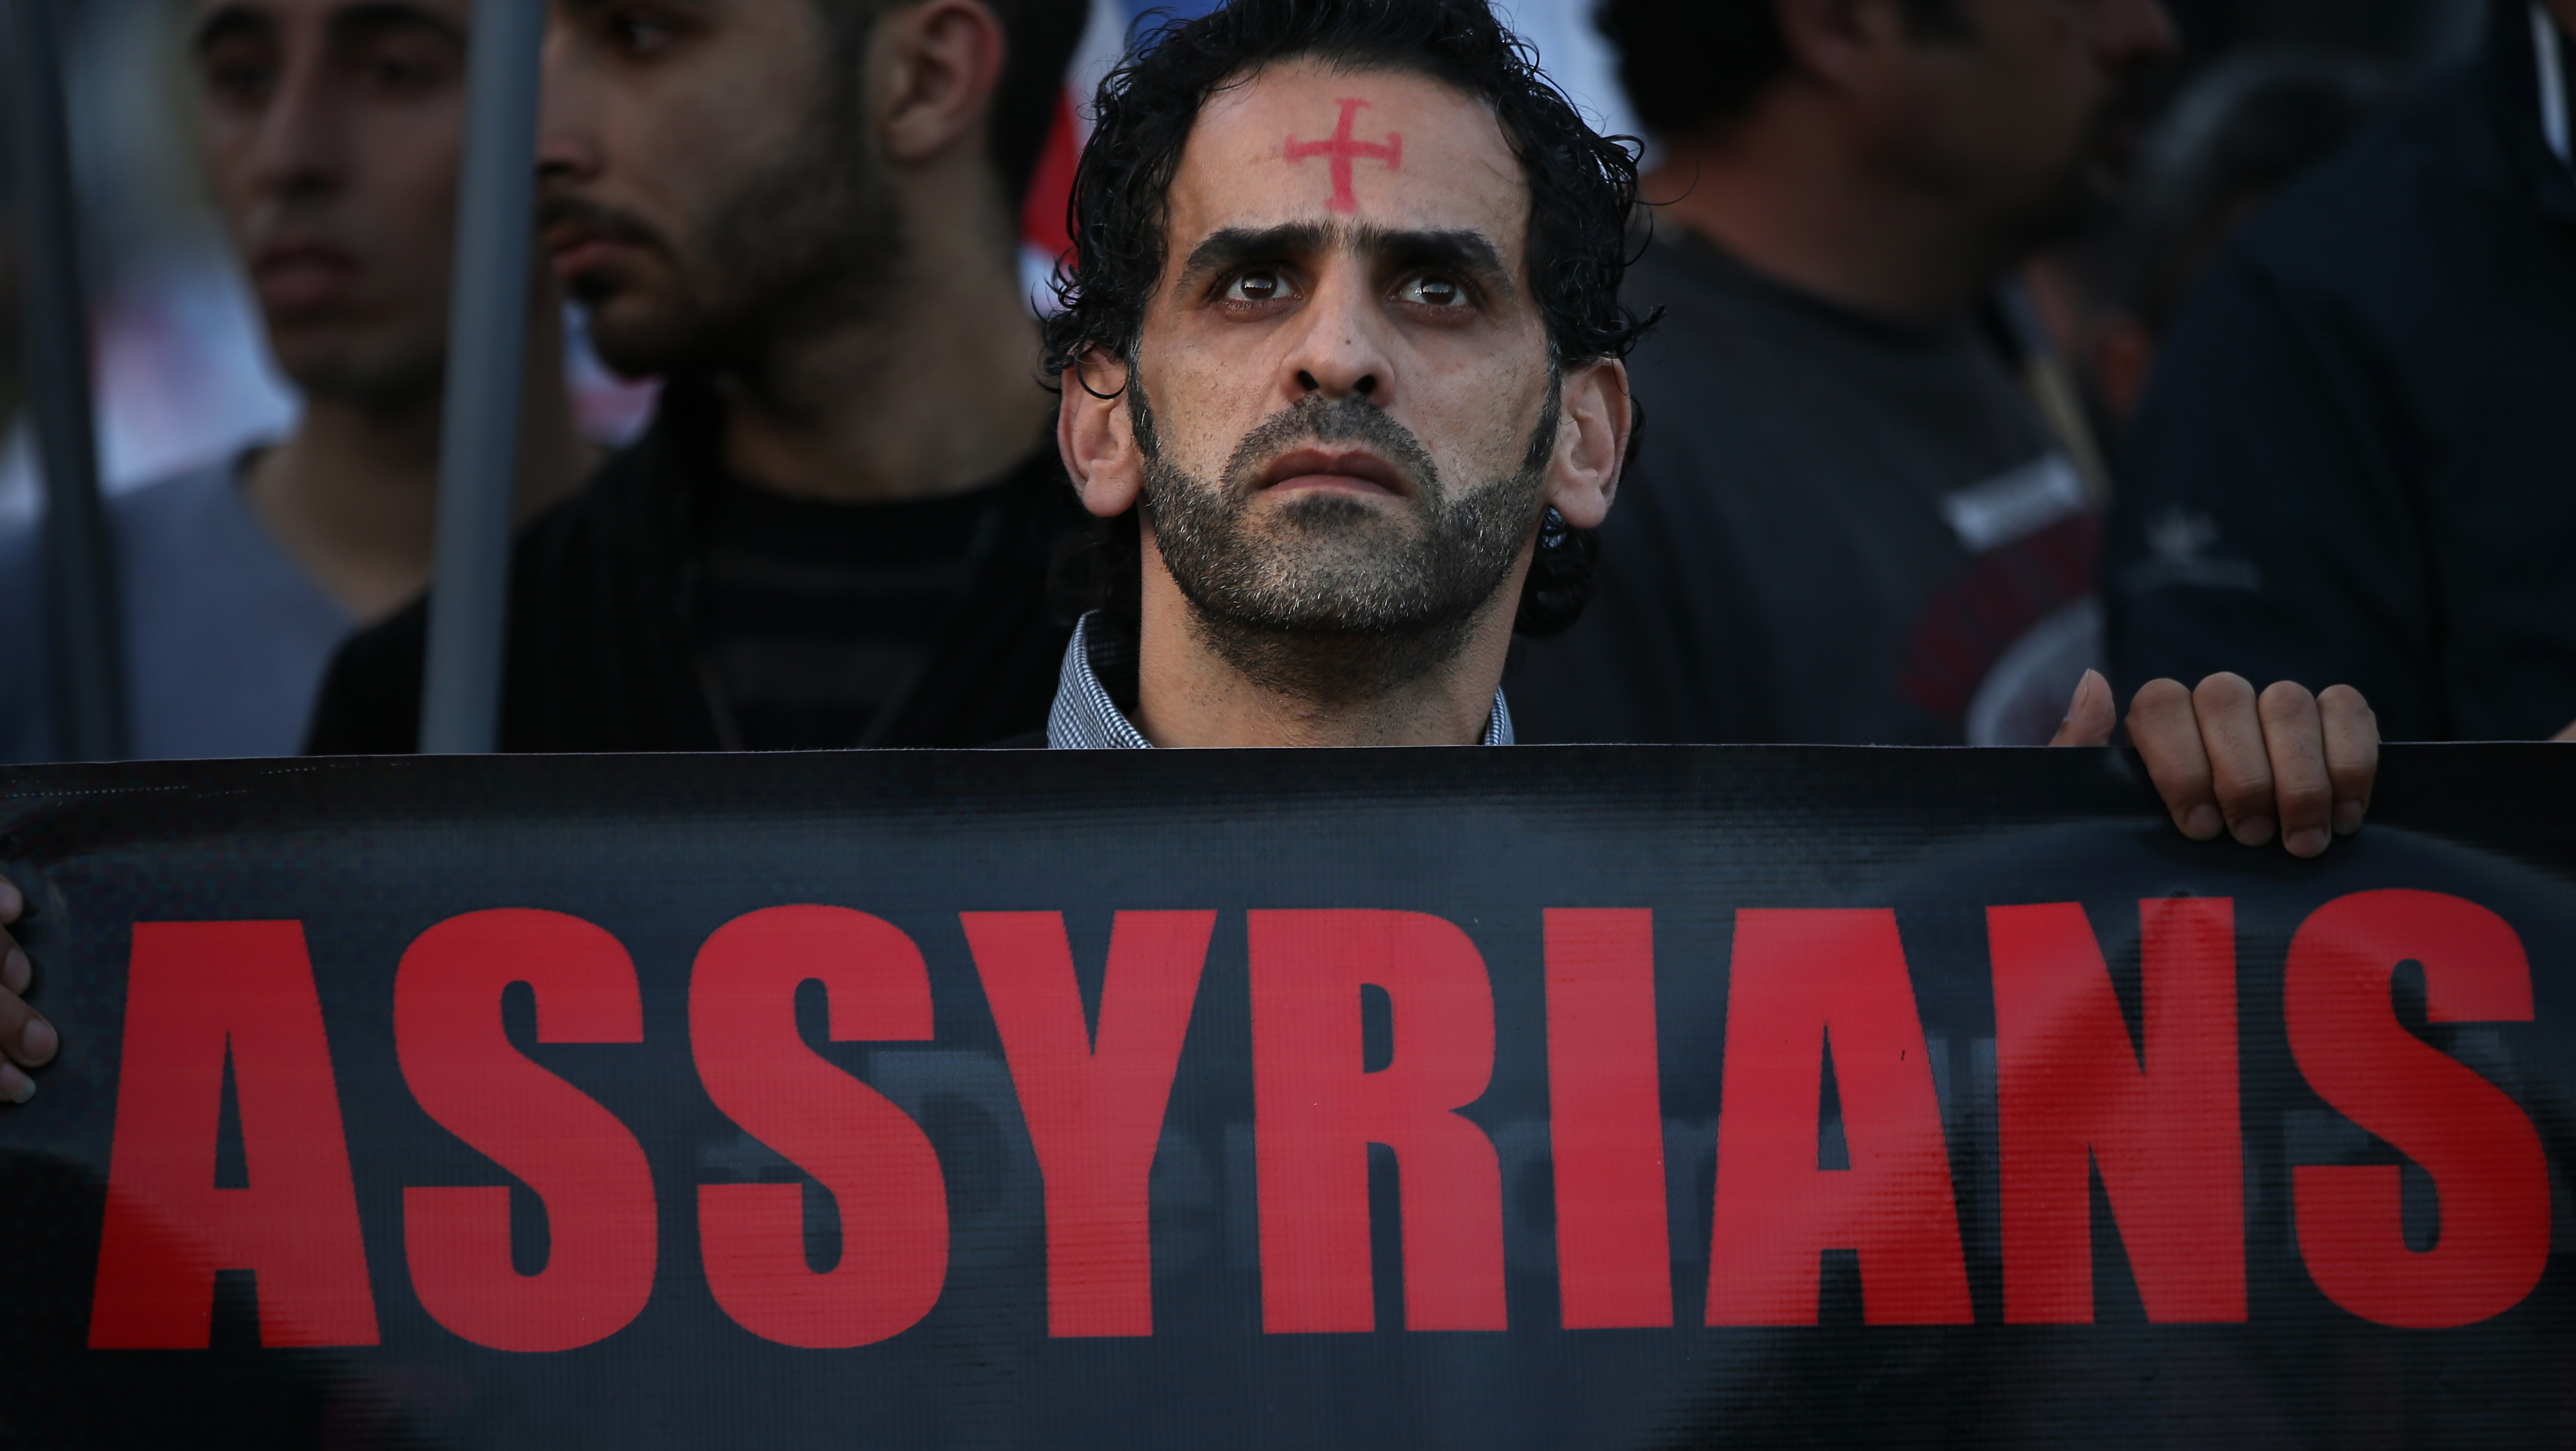 Islamic State Releases Small Group of Assyrian Christian Hostages Days After Mass Kidnapping